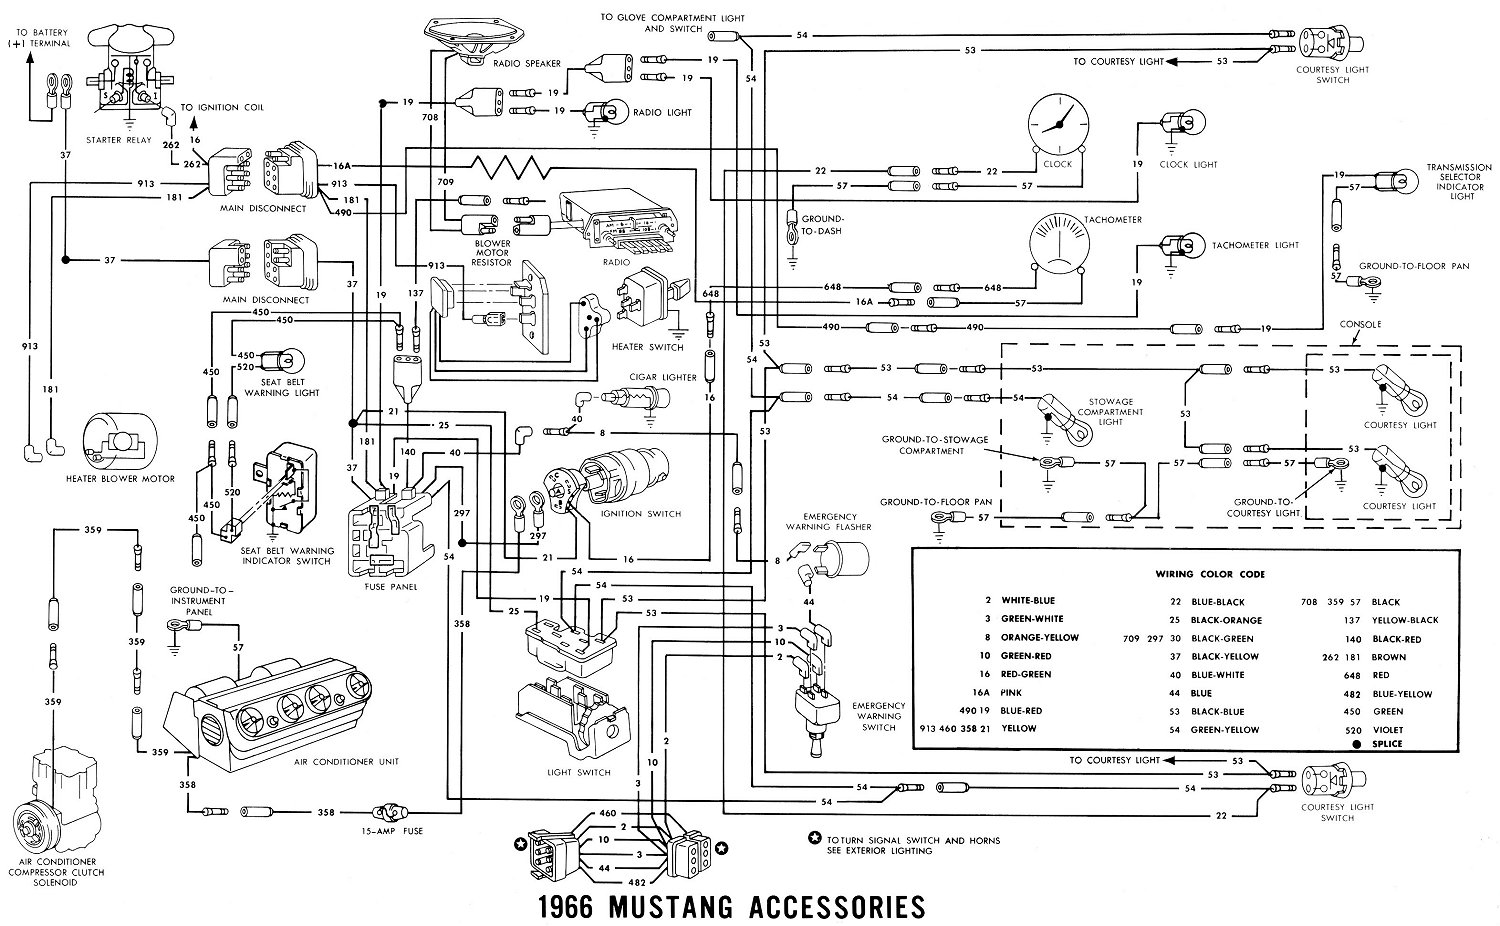 66acces1 florida mustang restorations 2008 ford mustang wiring diagrams at honlapkeszites.co